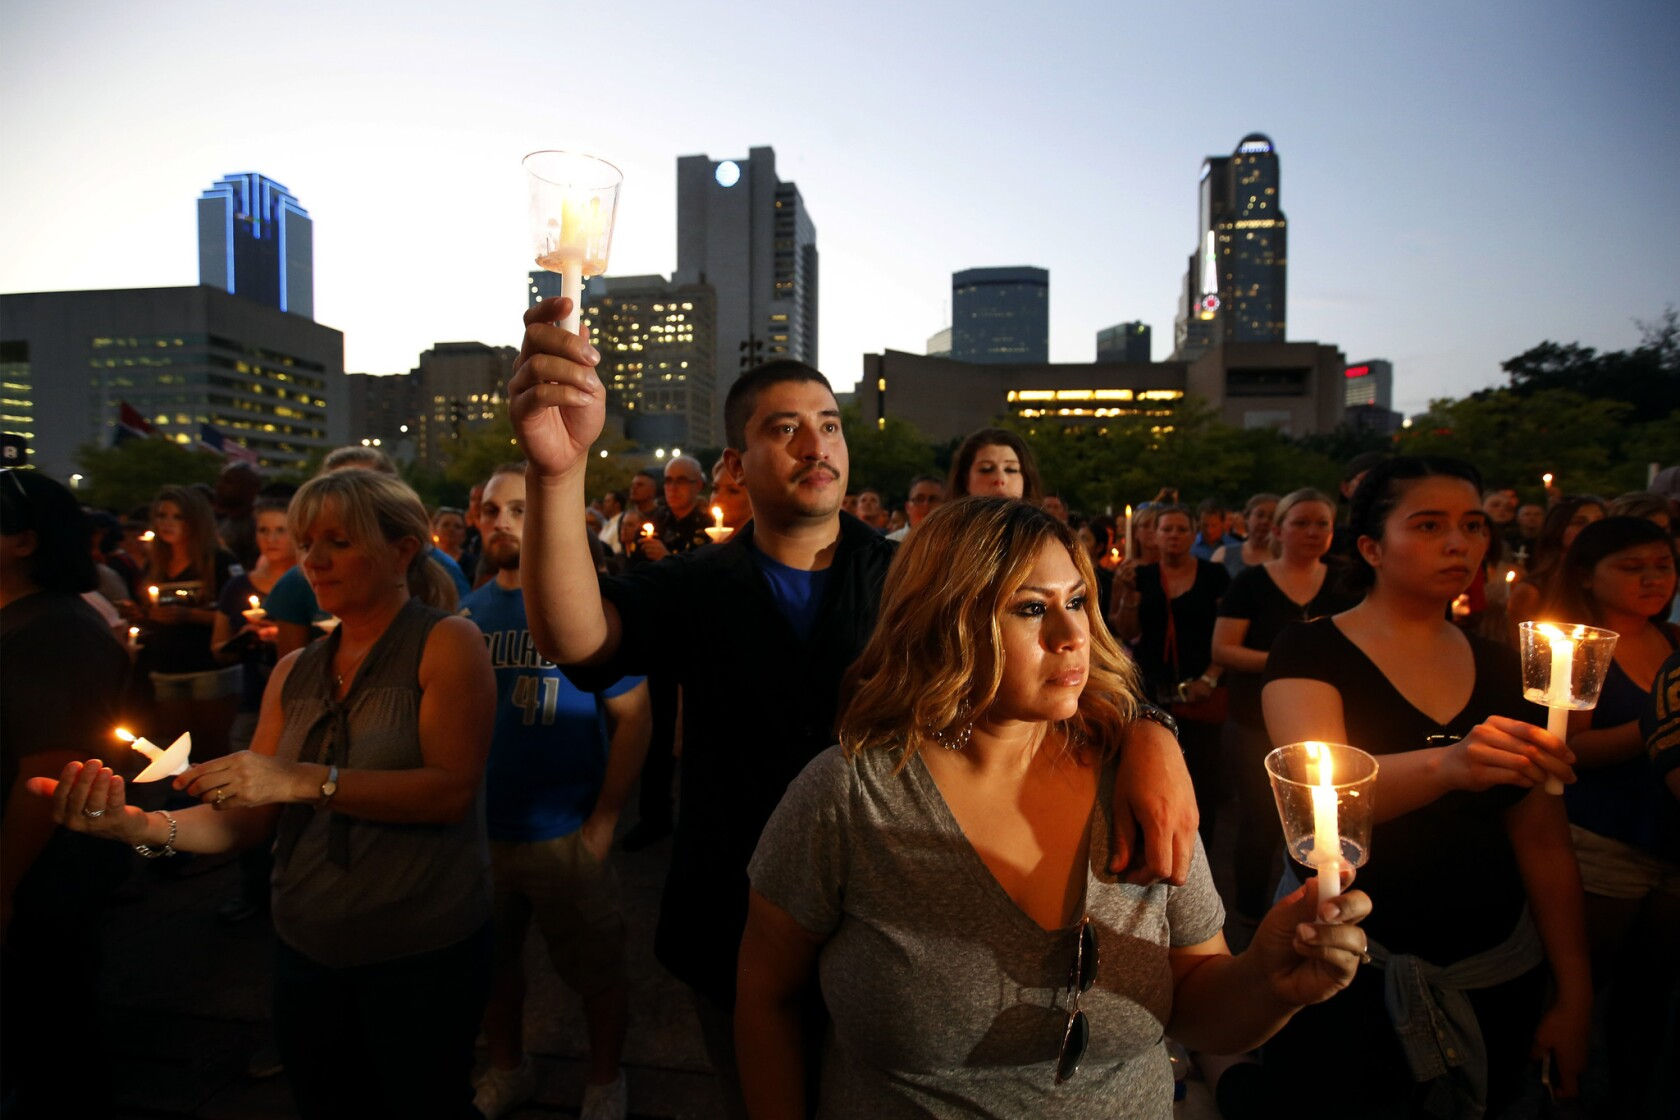 Farewell, brother': Dallas police mourn their fallen